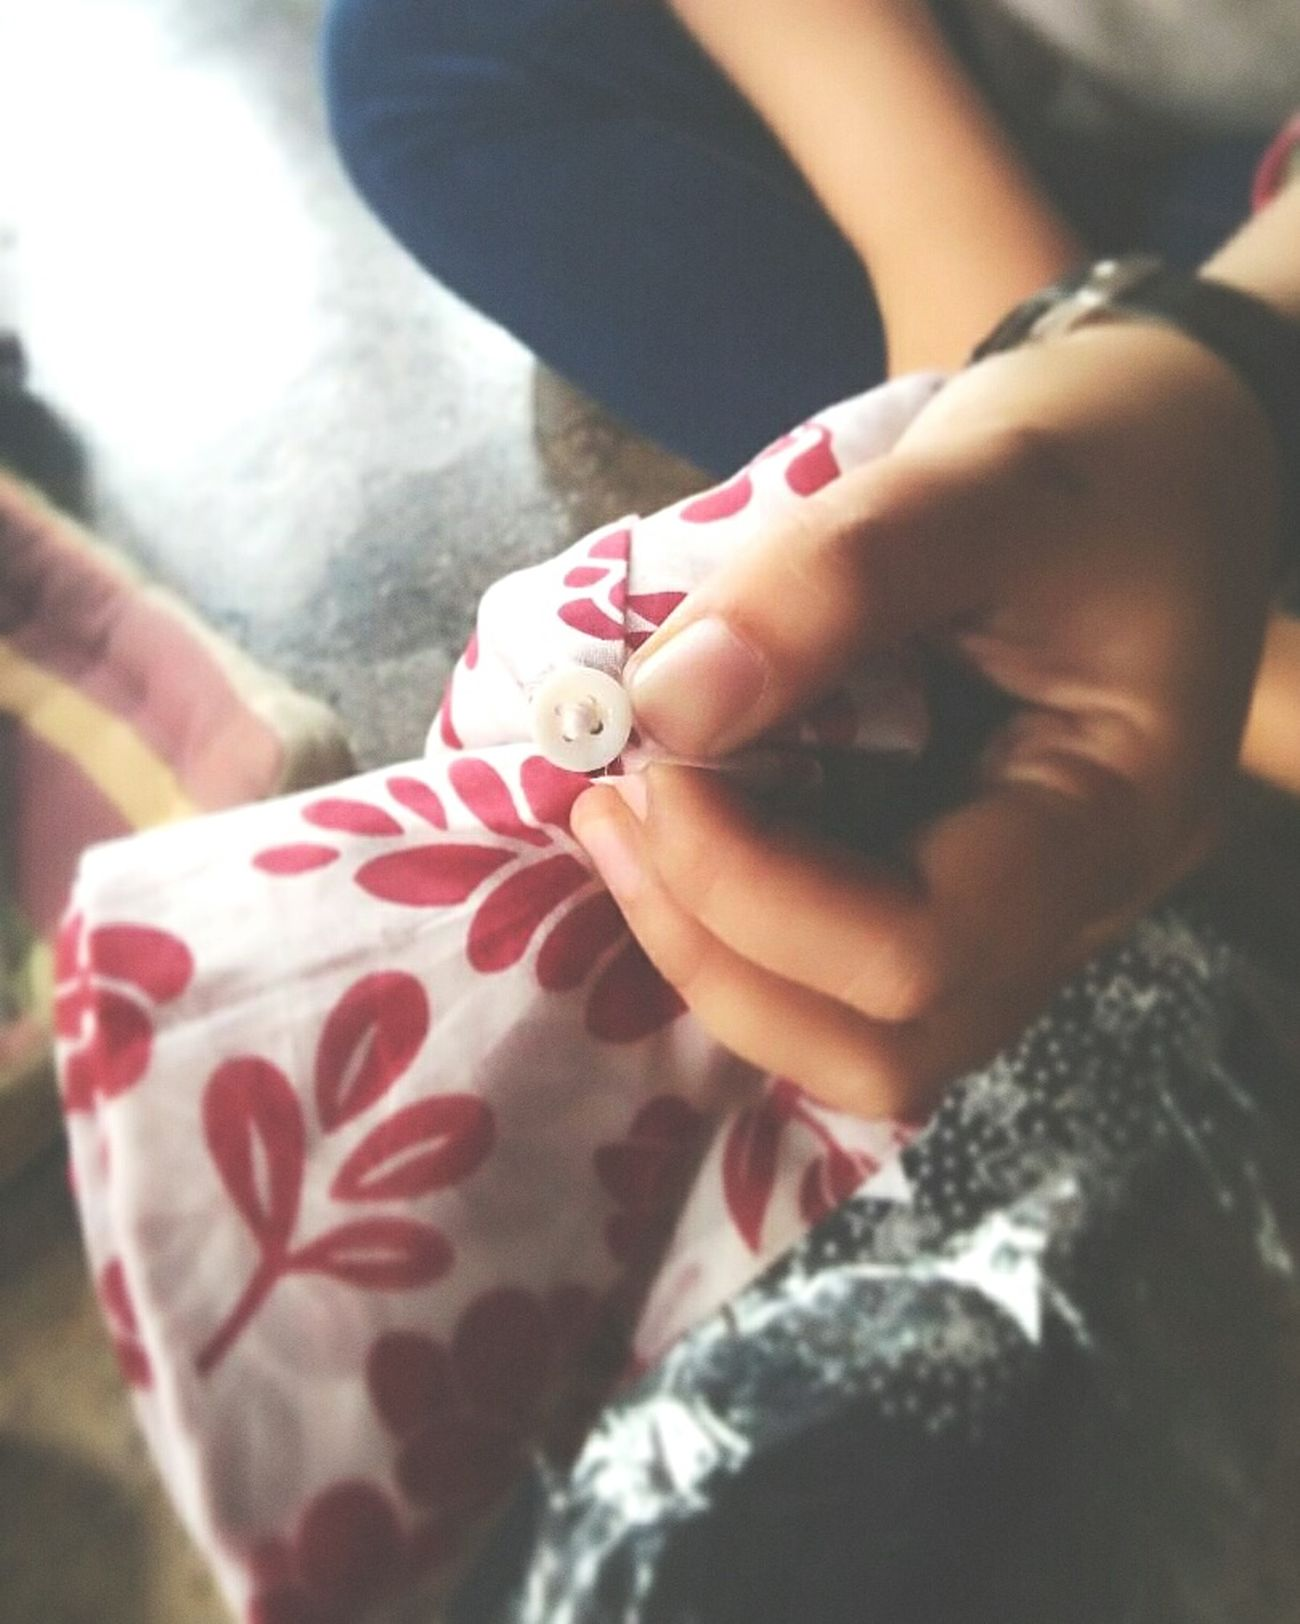 A Jorney called Life. It's just a small button, but its function, to collate the one side and the other side. The button is a HOPE, which wants to make everything close neatly, united, and inseparable. Button Up Shirt Colors and patterns Focus Object